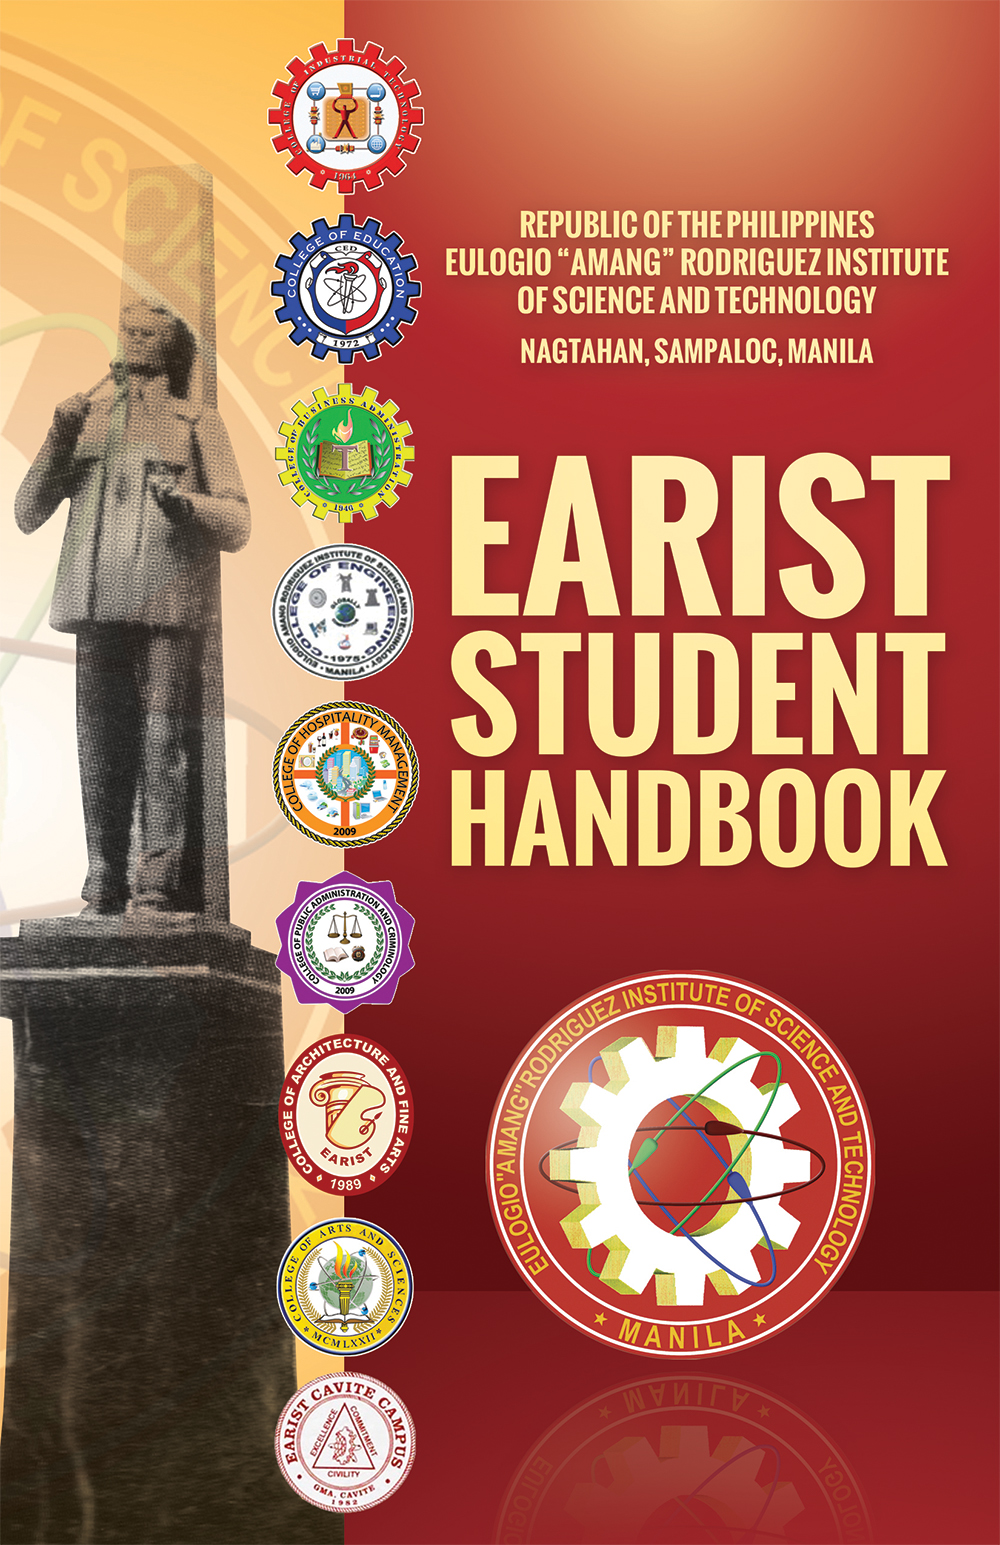 Hand Book Cover Design : Earist handbook cover by timothydiokno on deviantart